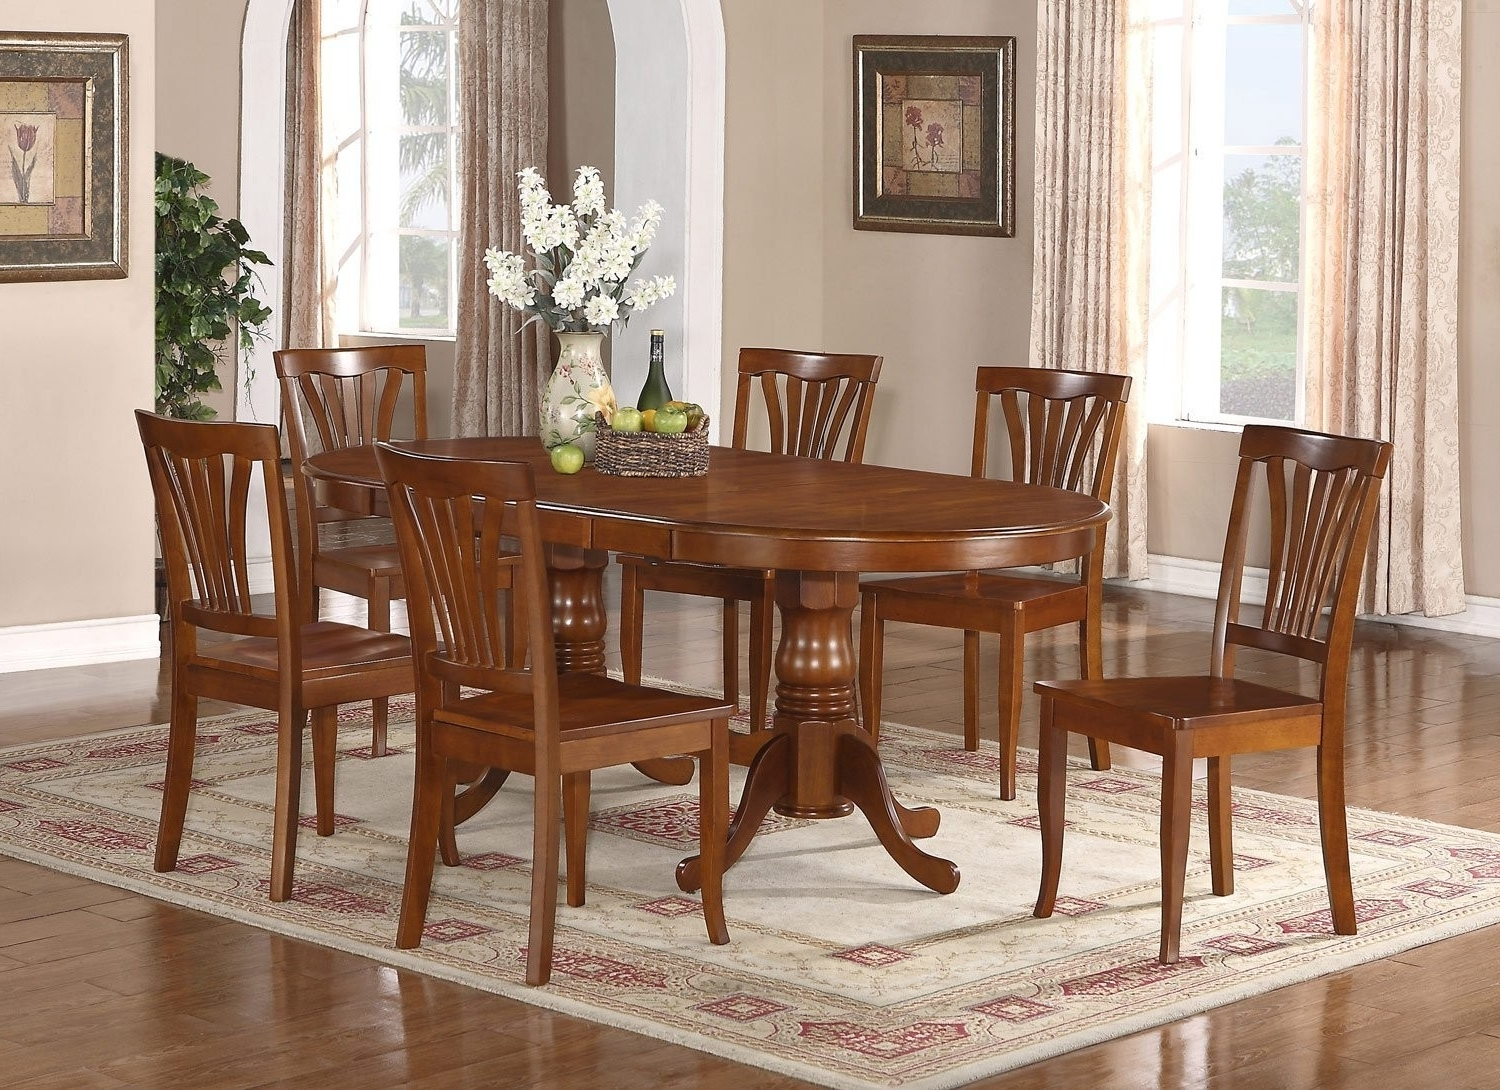 Preferred Round Dining Room Table Set For 8 Best Of Elegant 8 Seater Dining For 8 Seater Black Dining Tables (View 18 of 25)